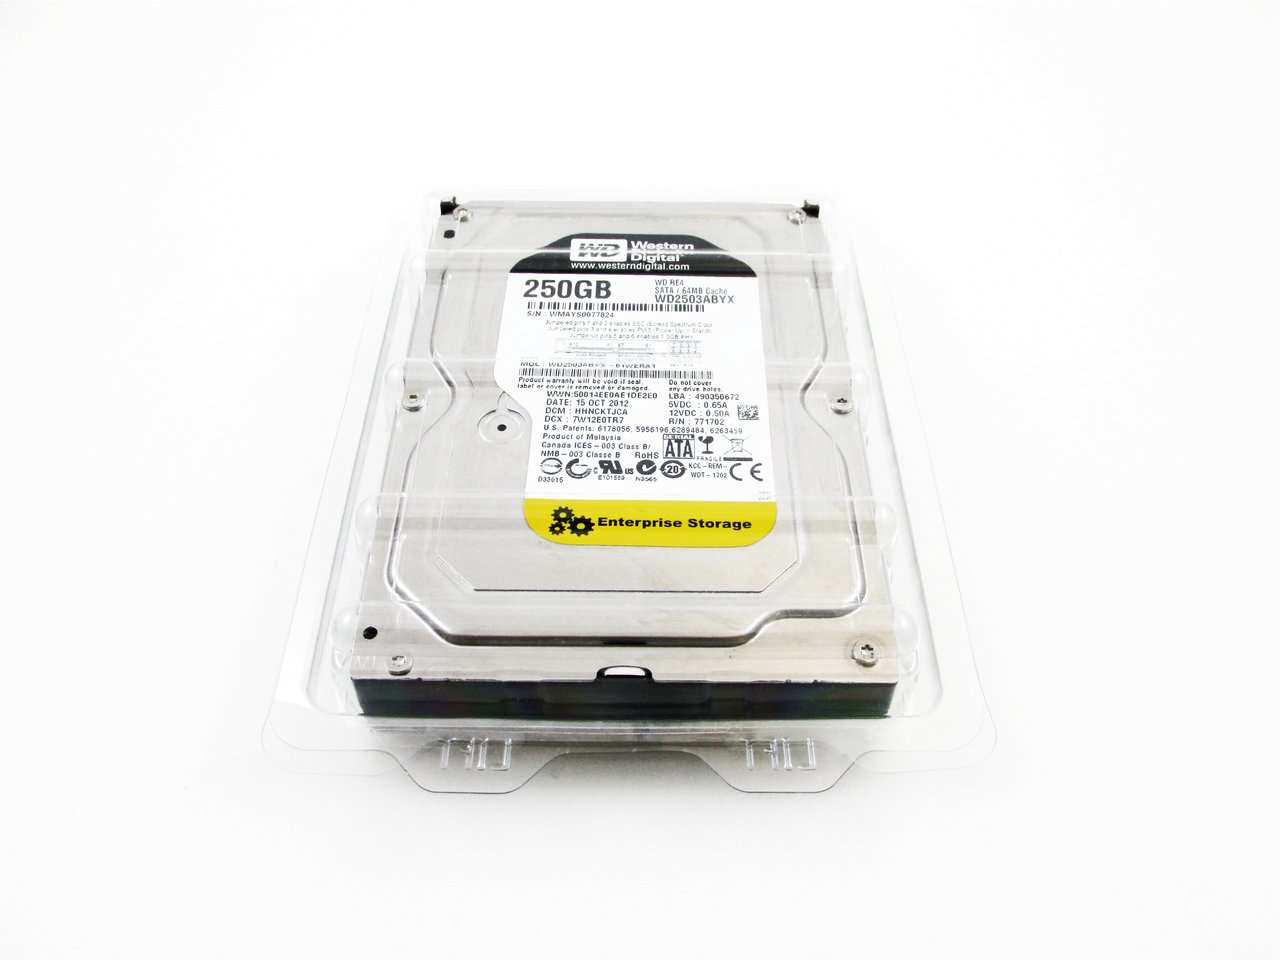 "Western Digital Re4 WD2503ABYX 250GB 7.2K RPM SATA 64MB 3.5"" Manufacturer Recertified HDD"